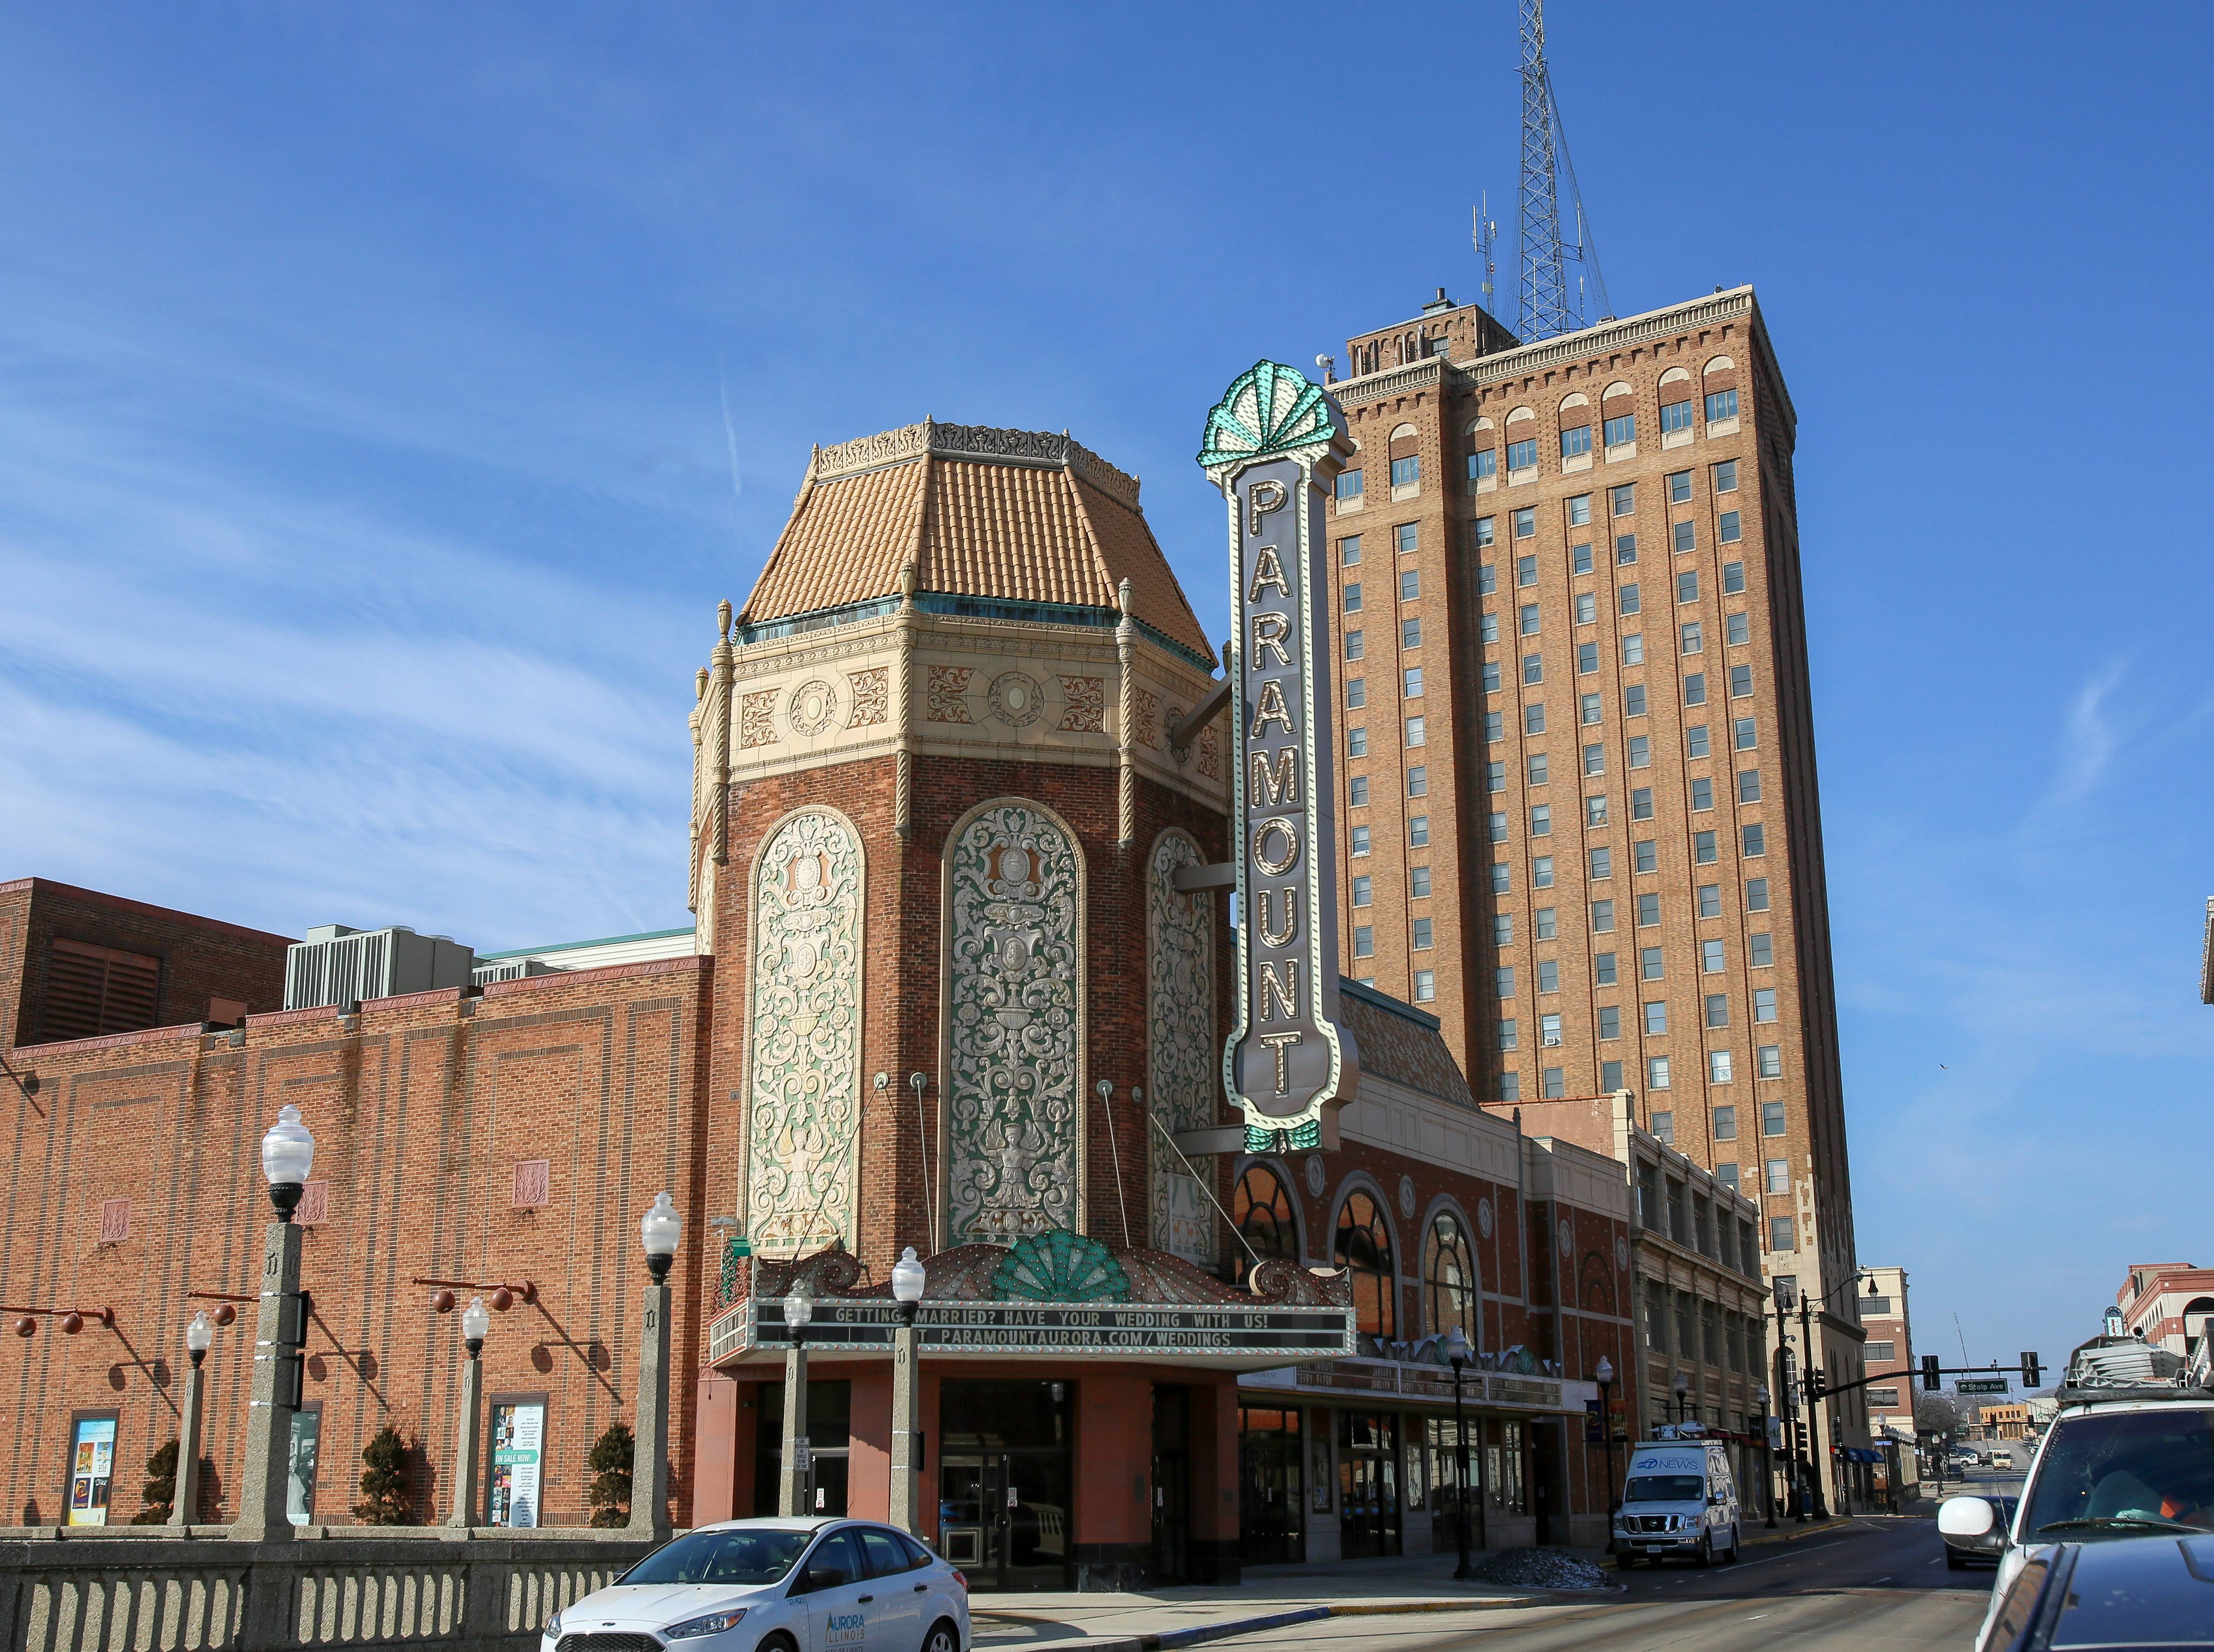 The Paramount Theatre in Aurora, which opened in 1931, soon will get all new seats as part of a $4.5 million campaign, which also includes the opening of a performing arts school and renovations at the Copley Theatre.